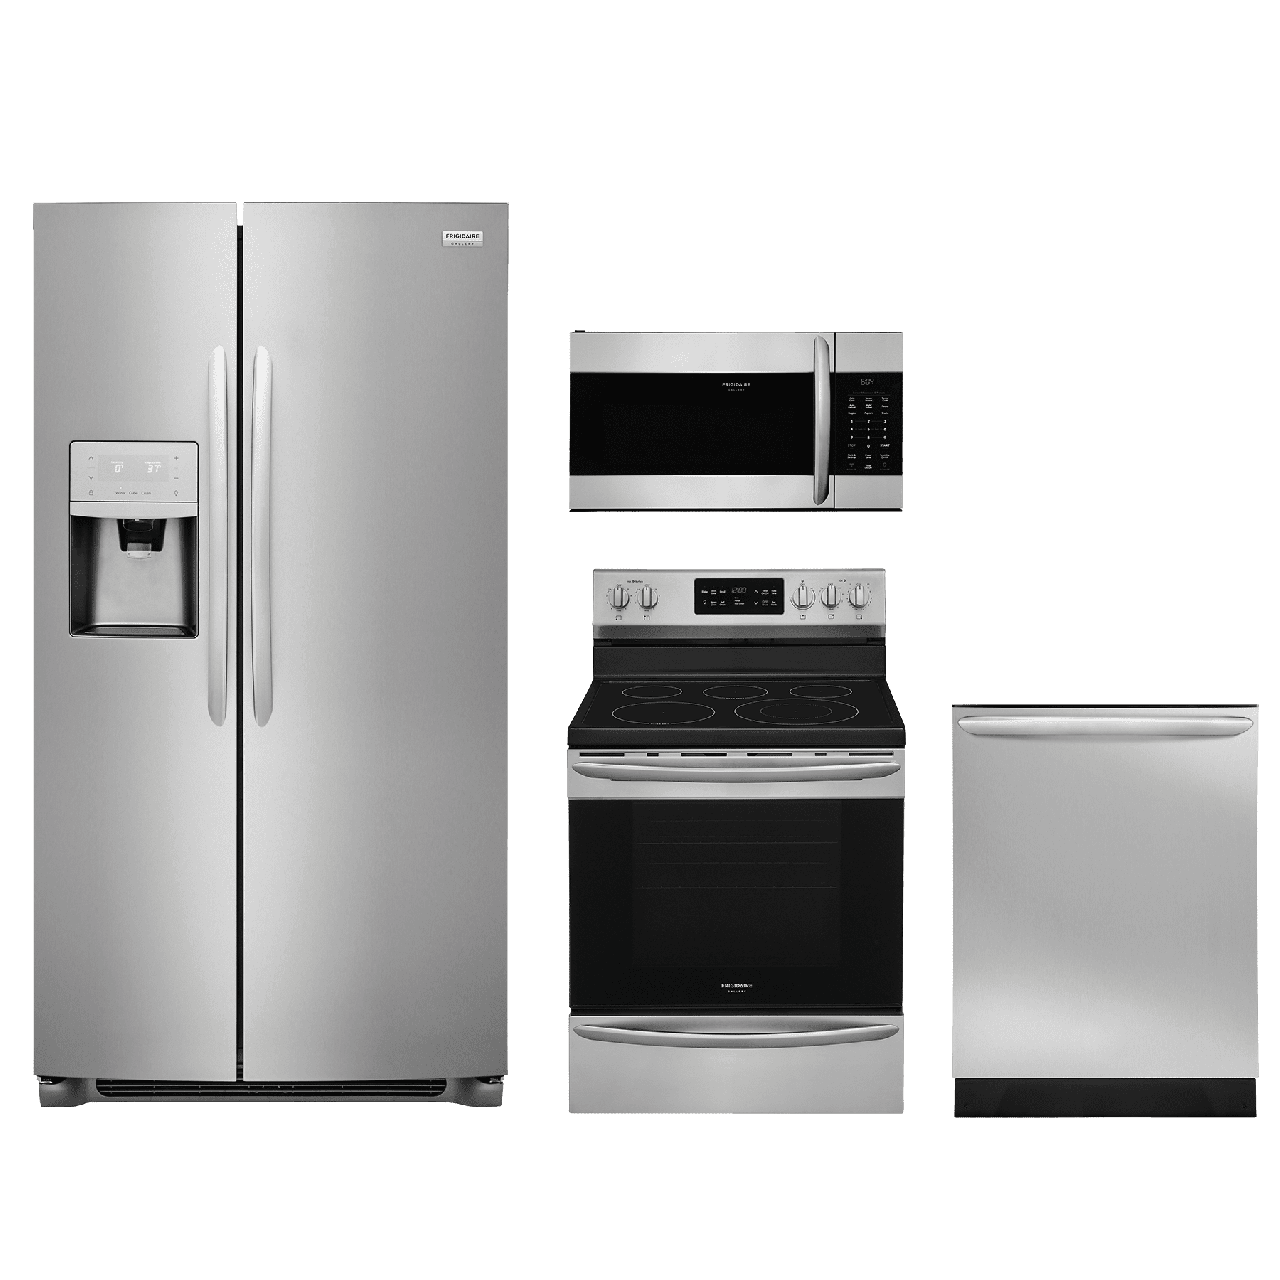 how to use bosch microwave oven